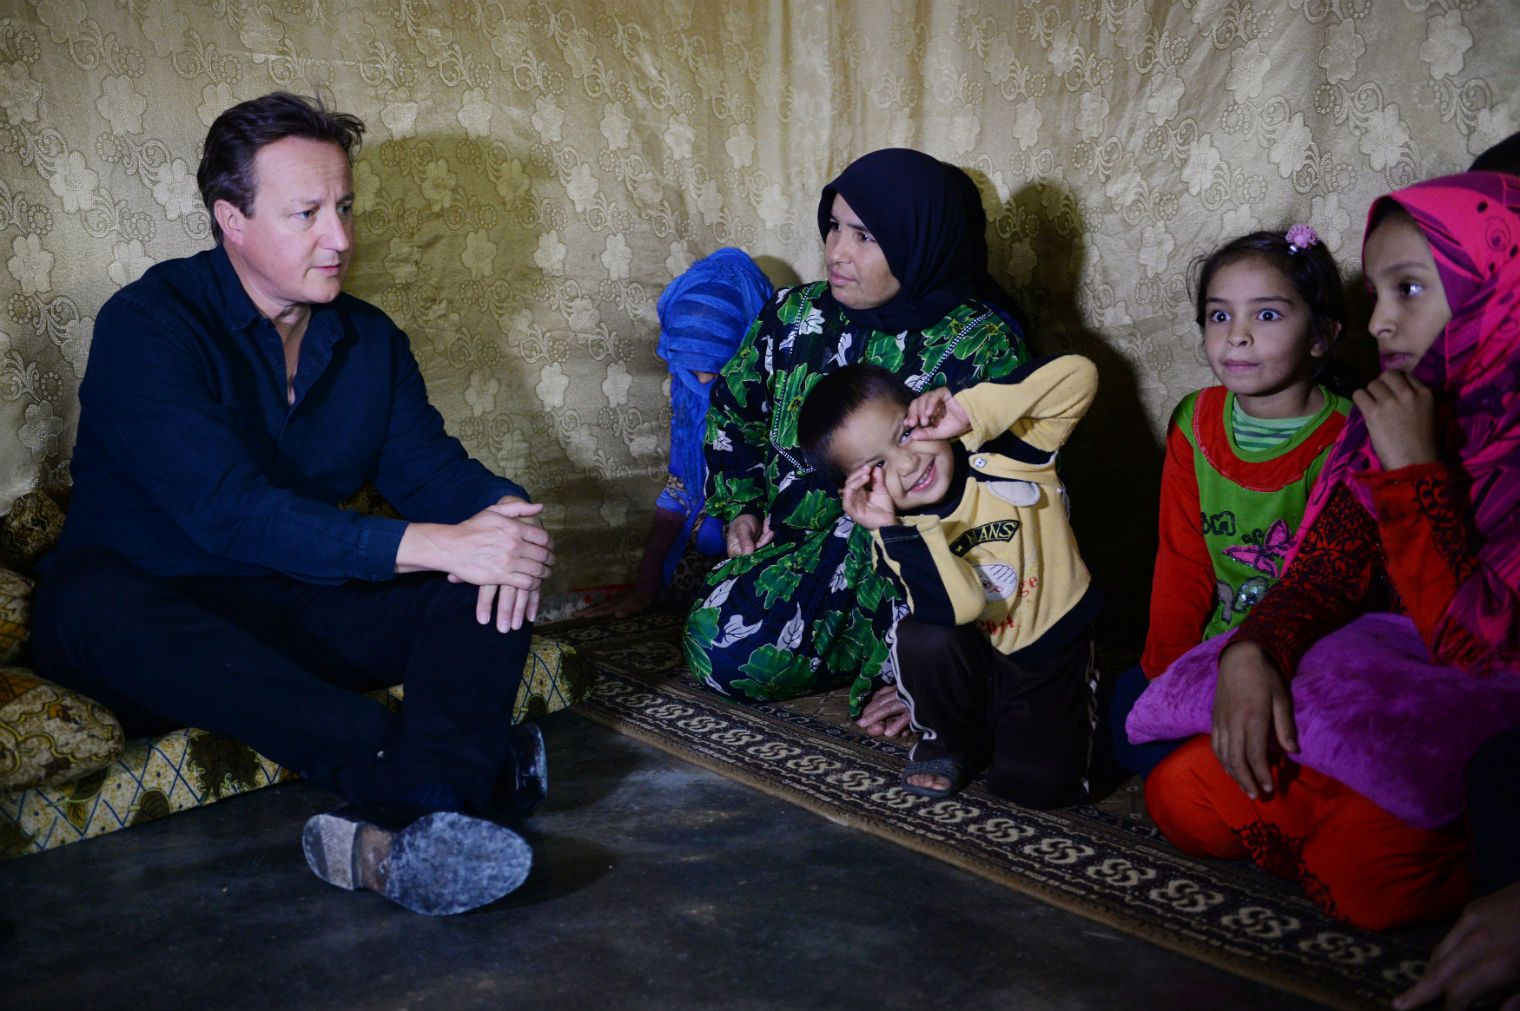 Even the Daily Mail thinks David Cameron's refugee policy is bad